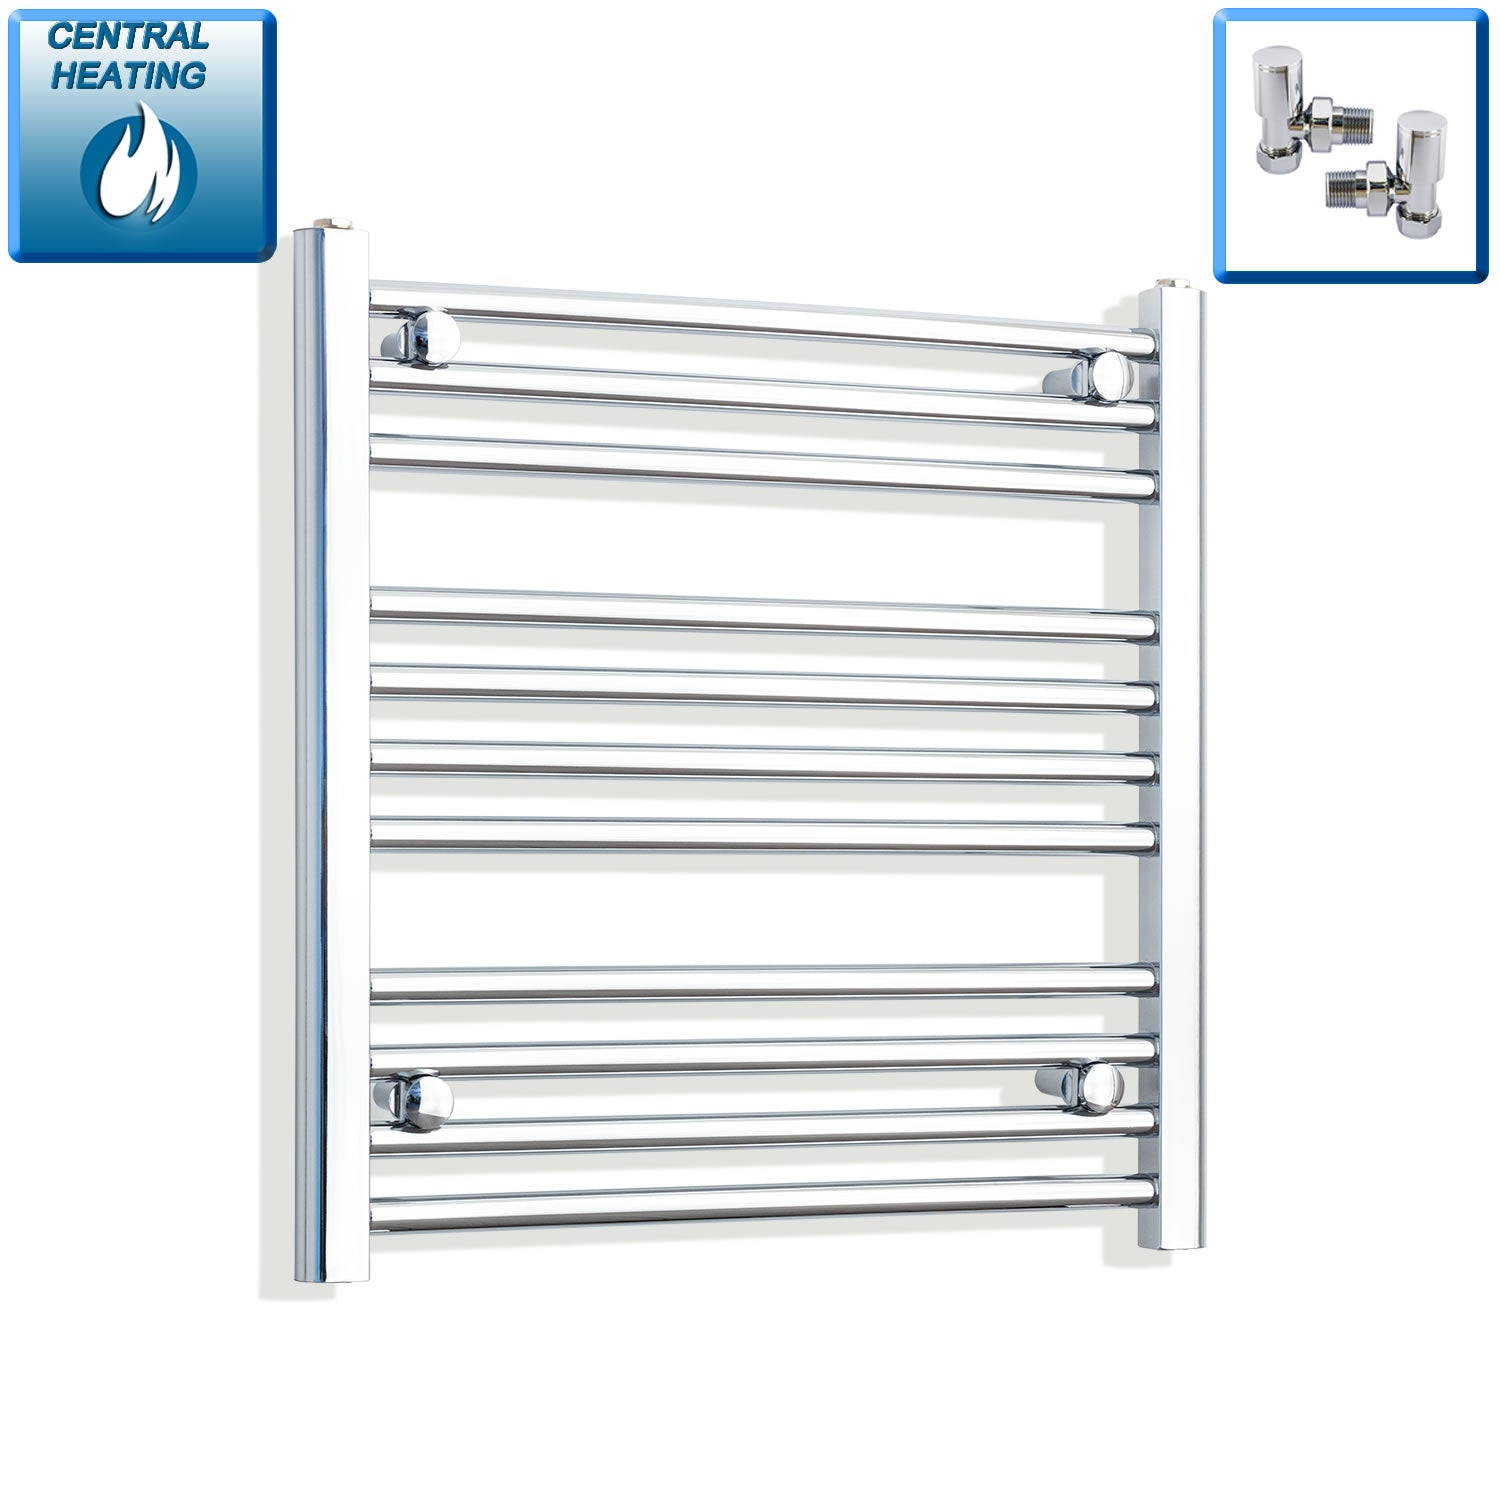 650mm Wide 600mm High Chrome Towel Rail Radiator With Angled Valve